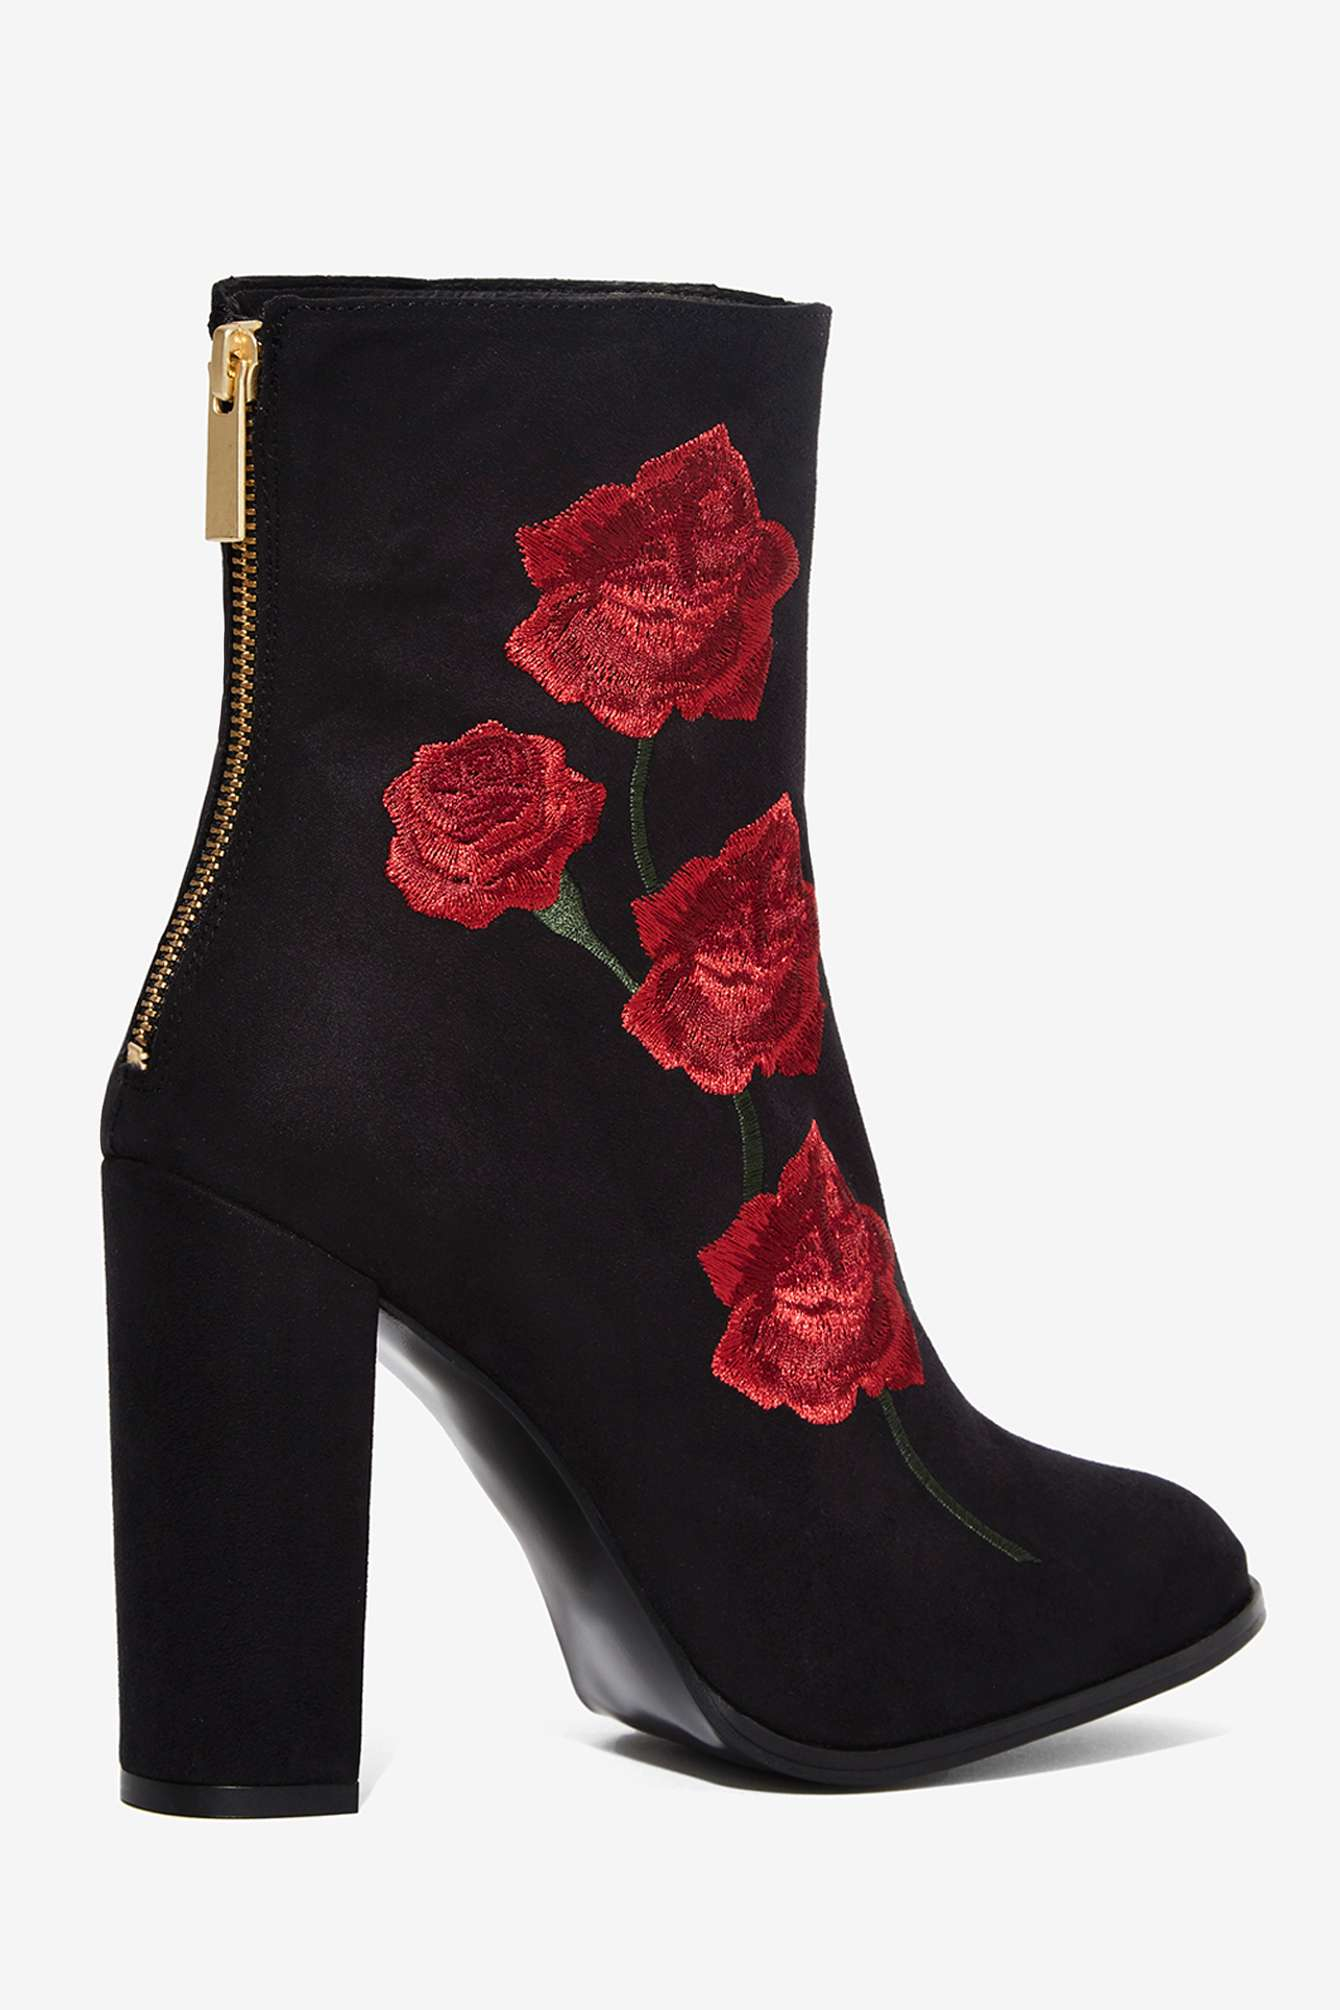 intentionally rosa embroidered suede boot in black